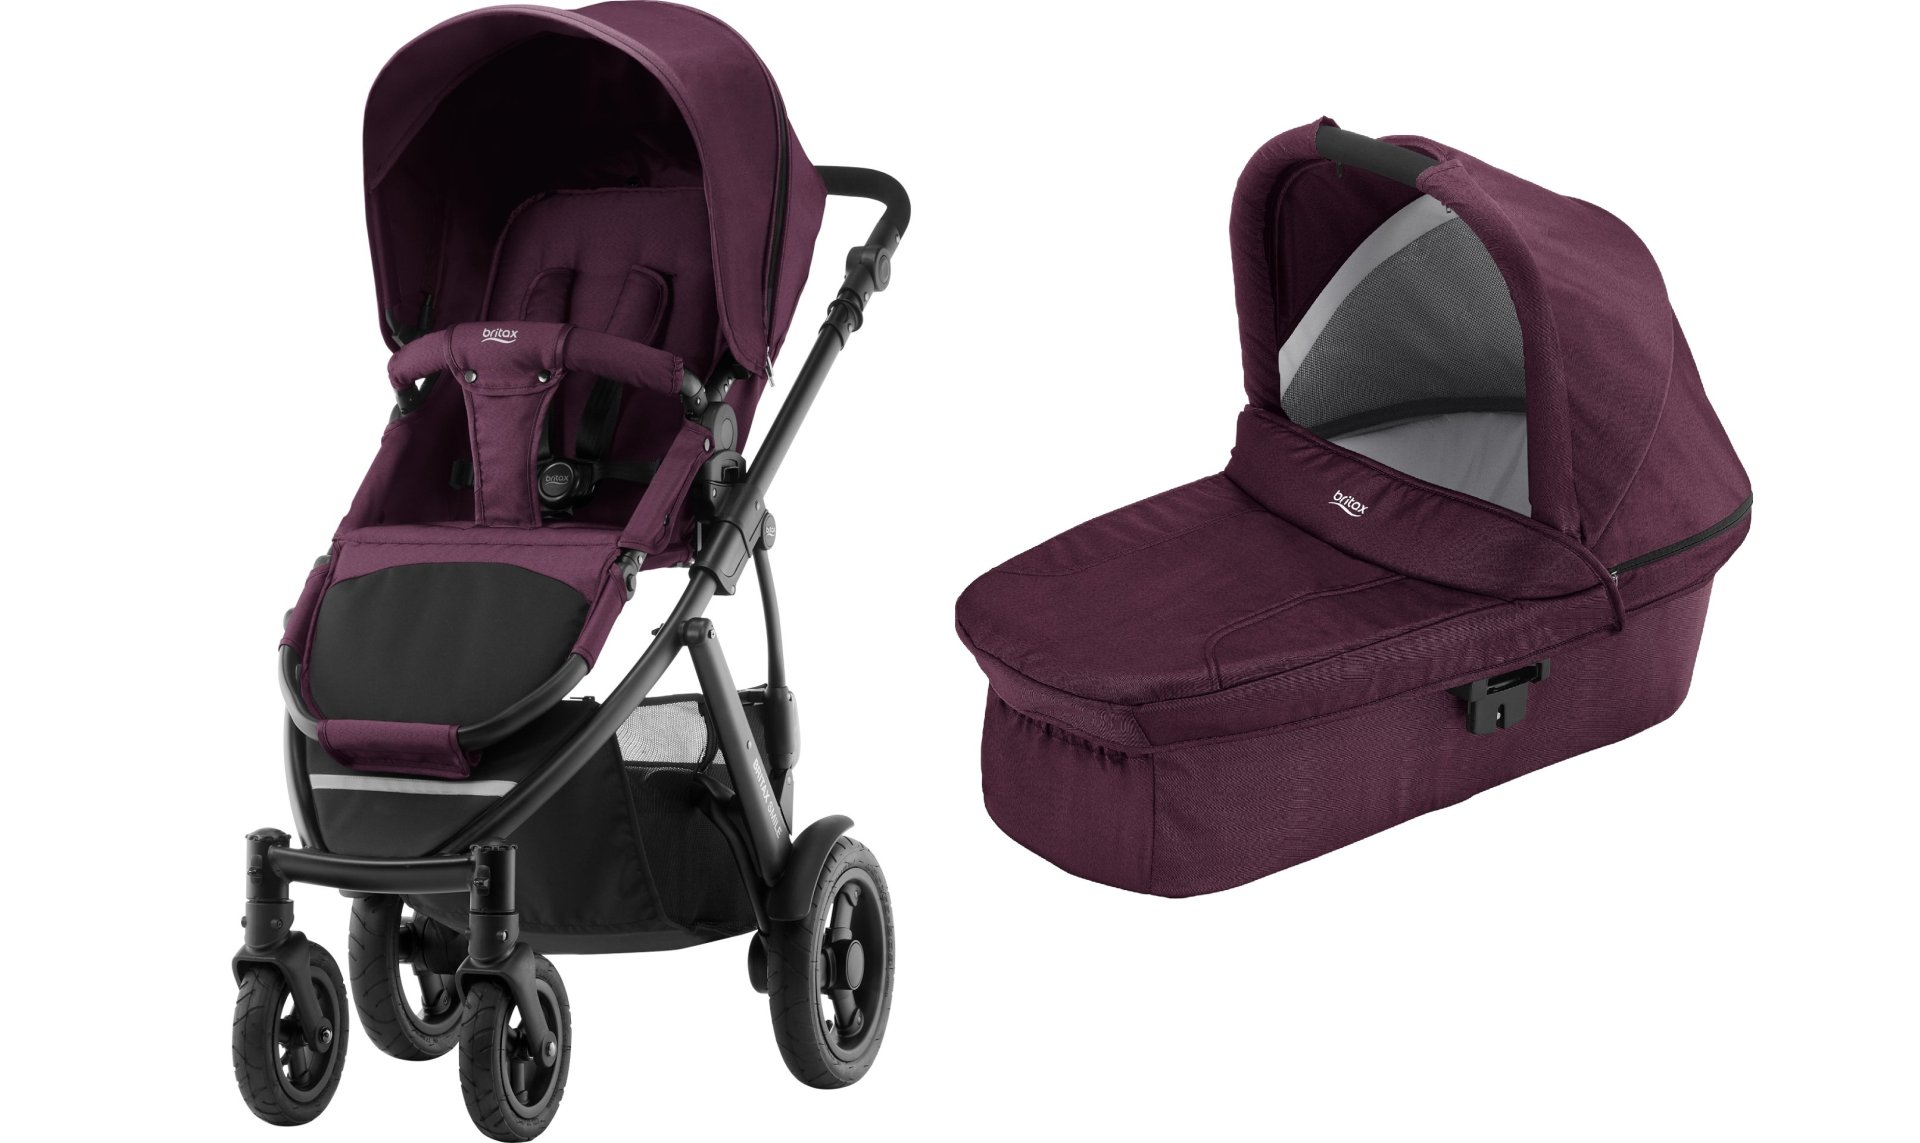 britax r mer smile 2 inkl hard carrycot kinderwagen aufsatz online kaufen bei kidsroom. Black Bedroom Furniture Sets. Home Design Ideas